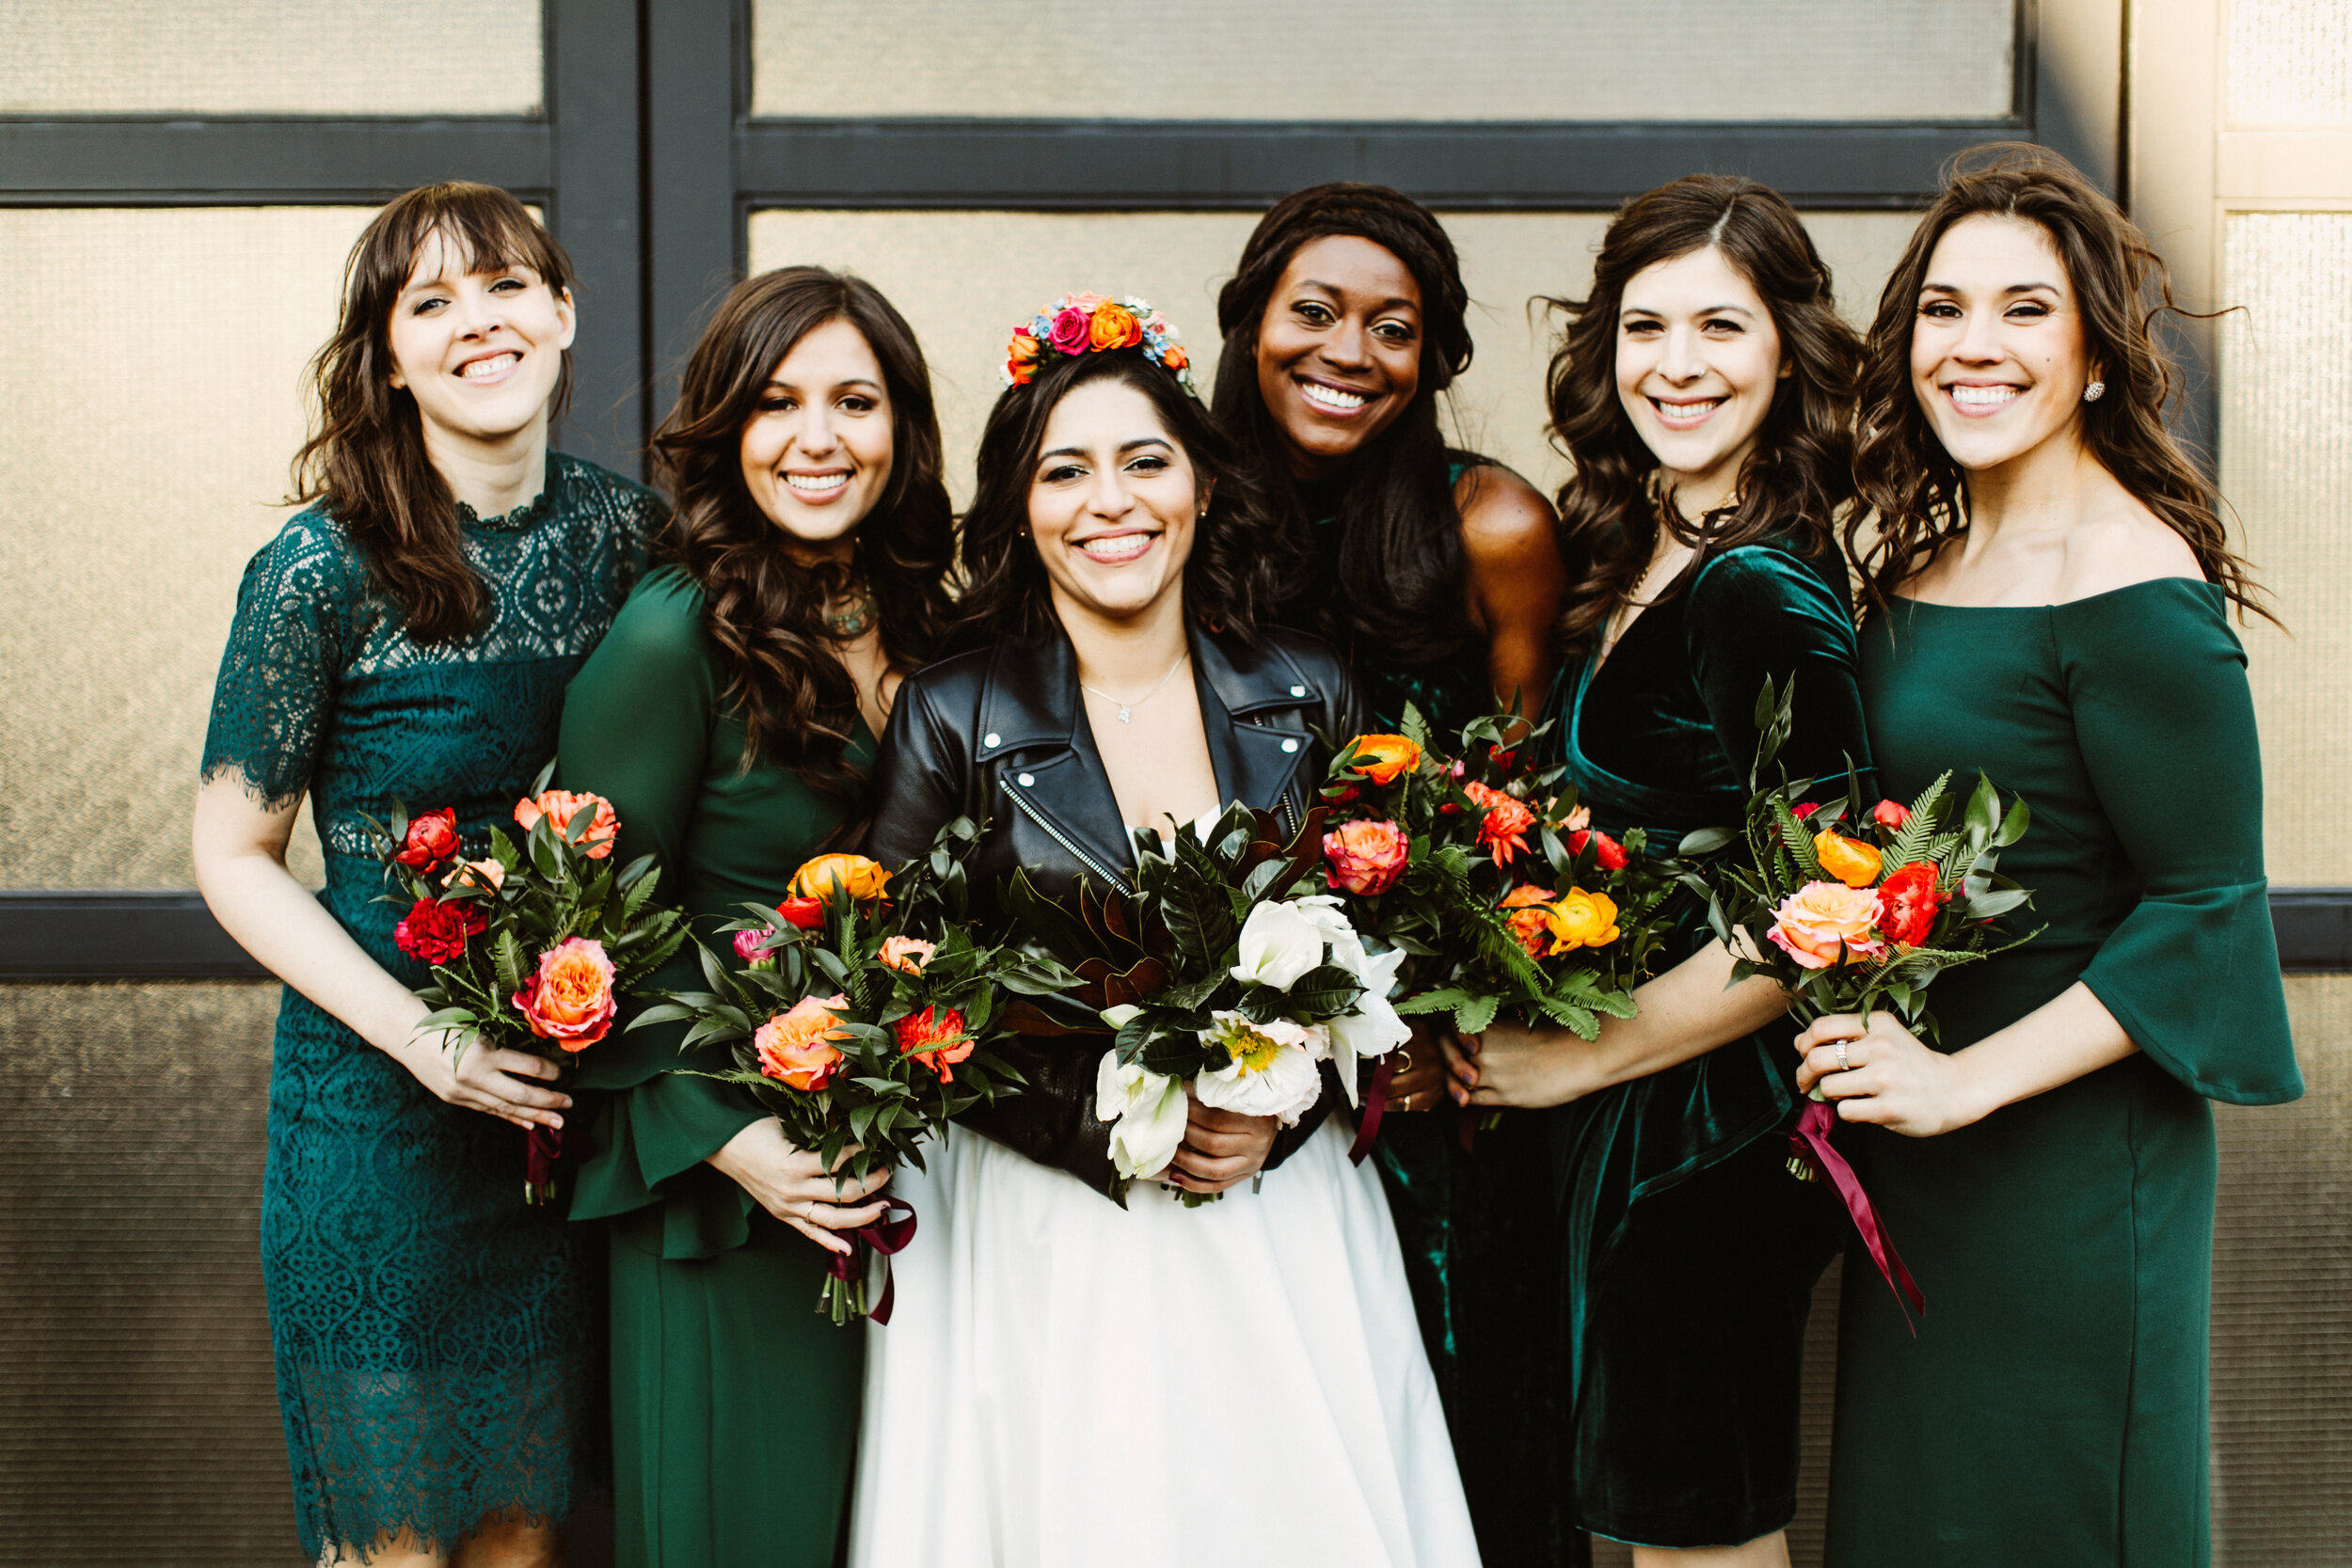 Catalyst wedding co. - How to Plan Your Long-Distance Wedding Party